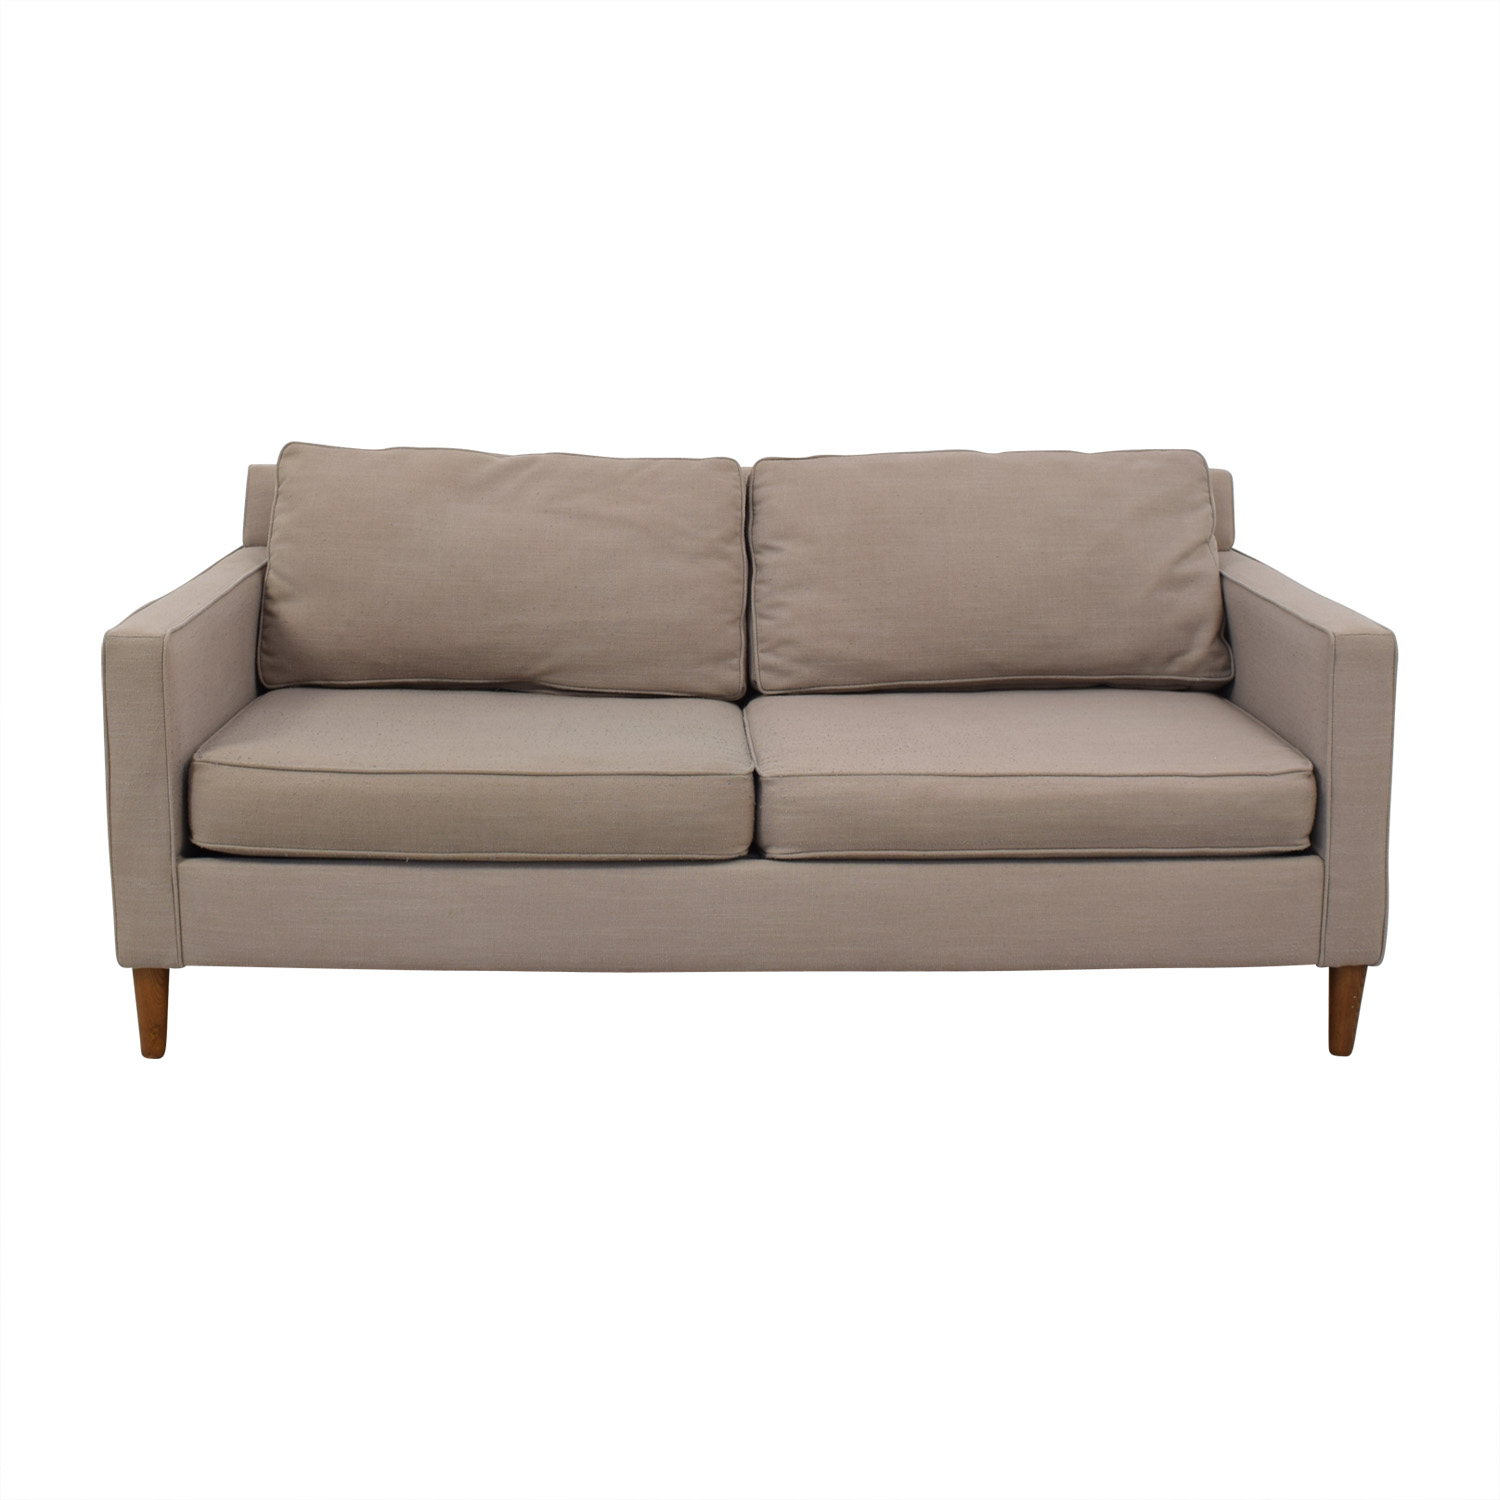 West Elm Henry Two Cushion Sofa / Loveseats